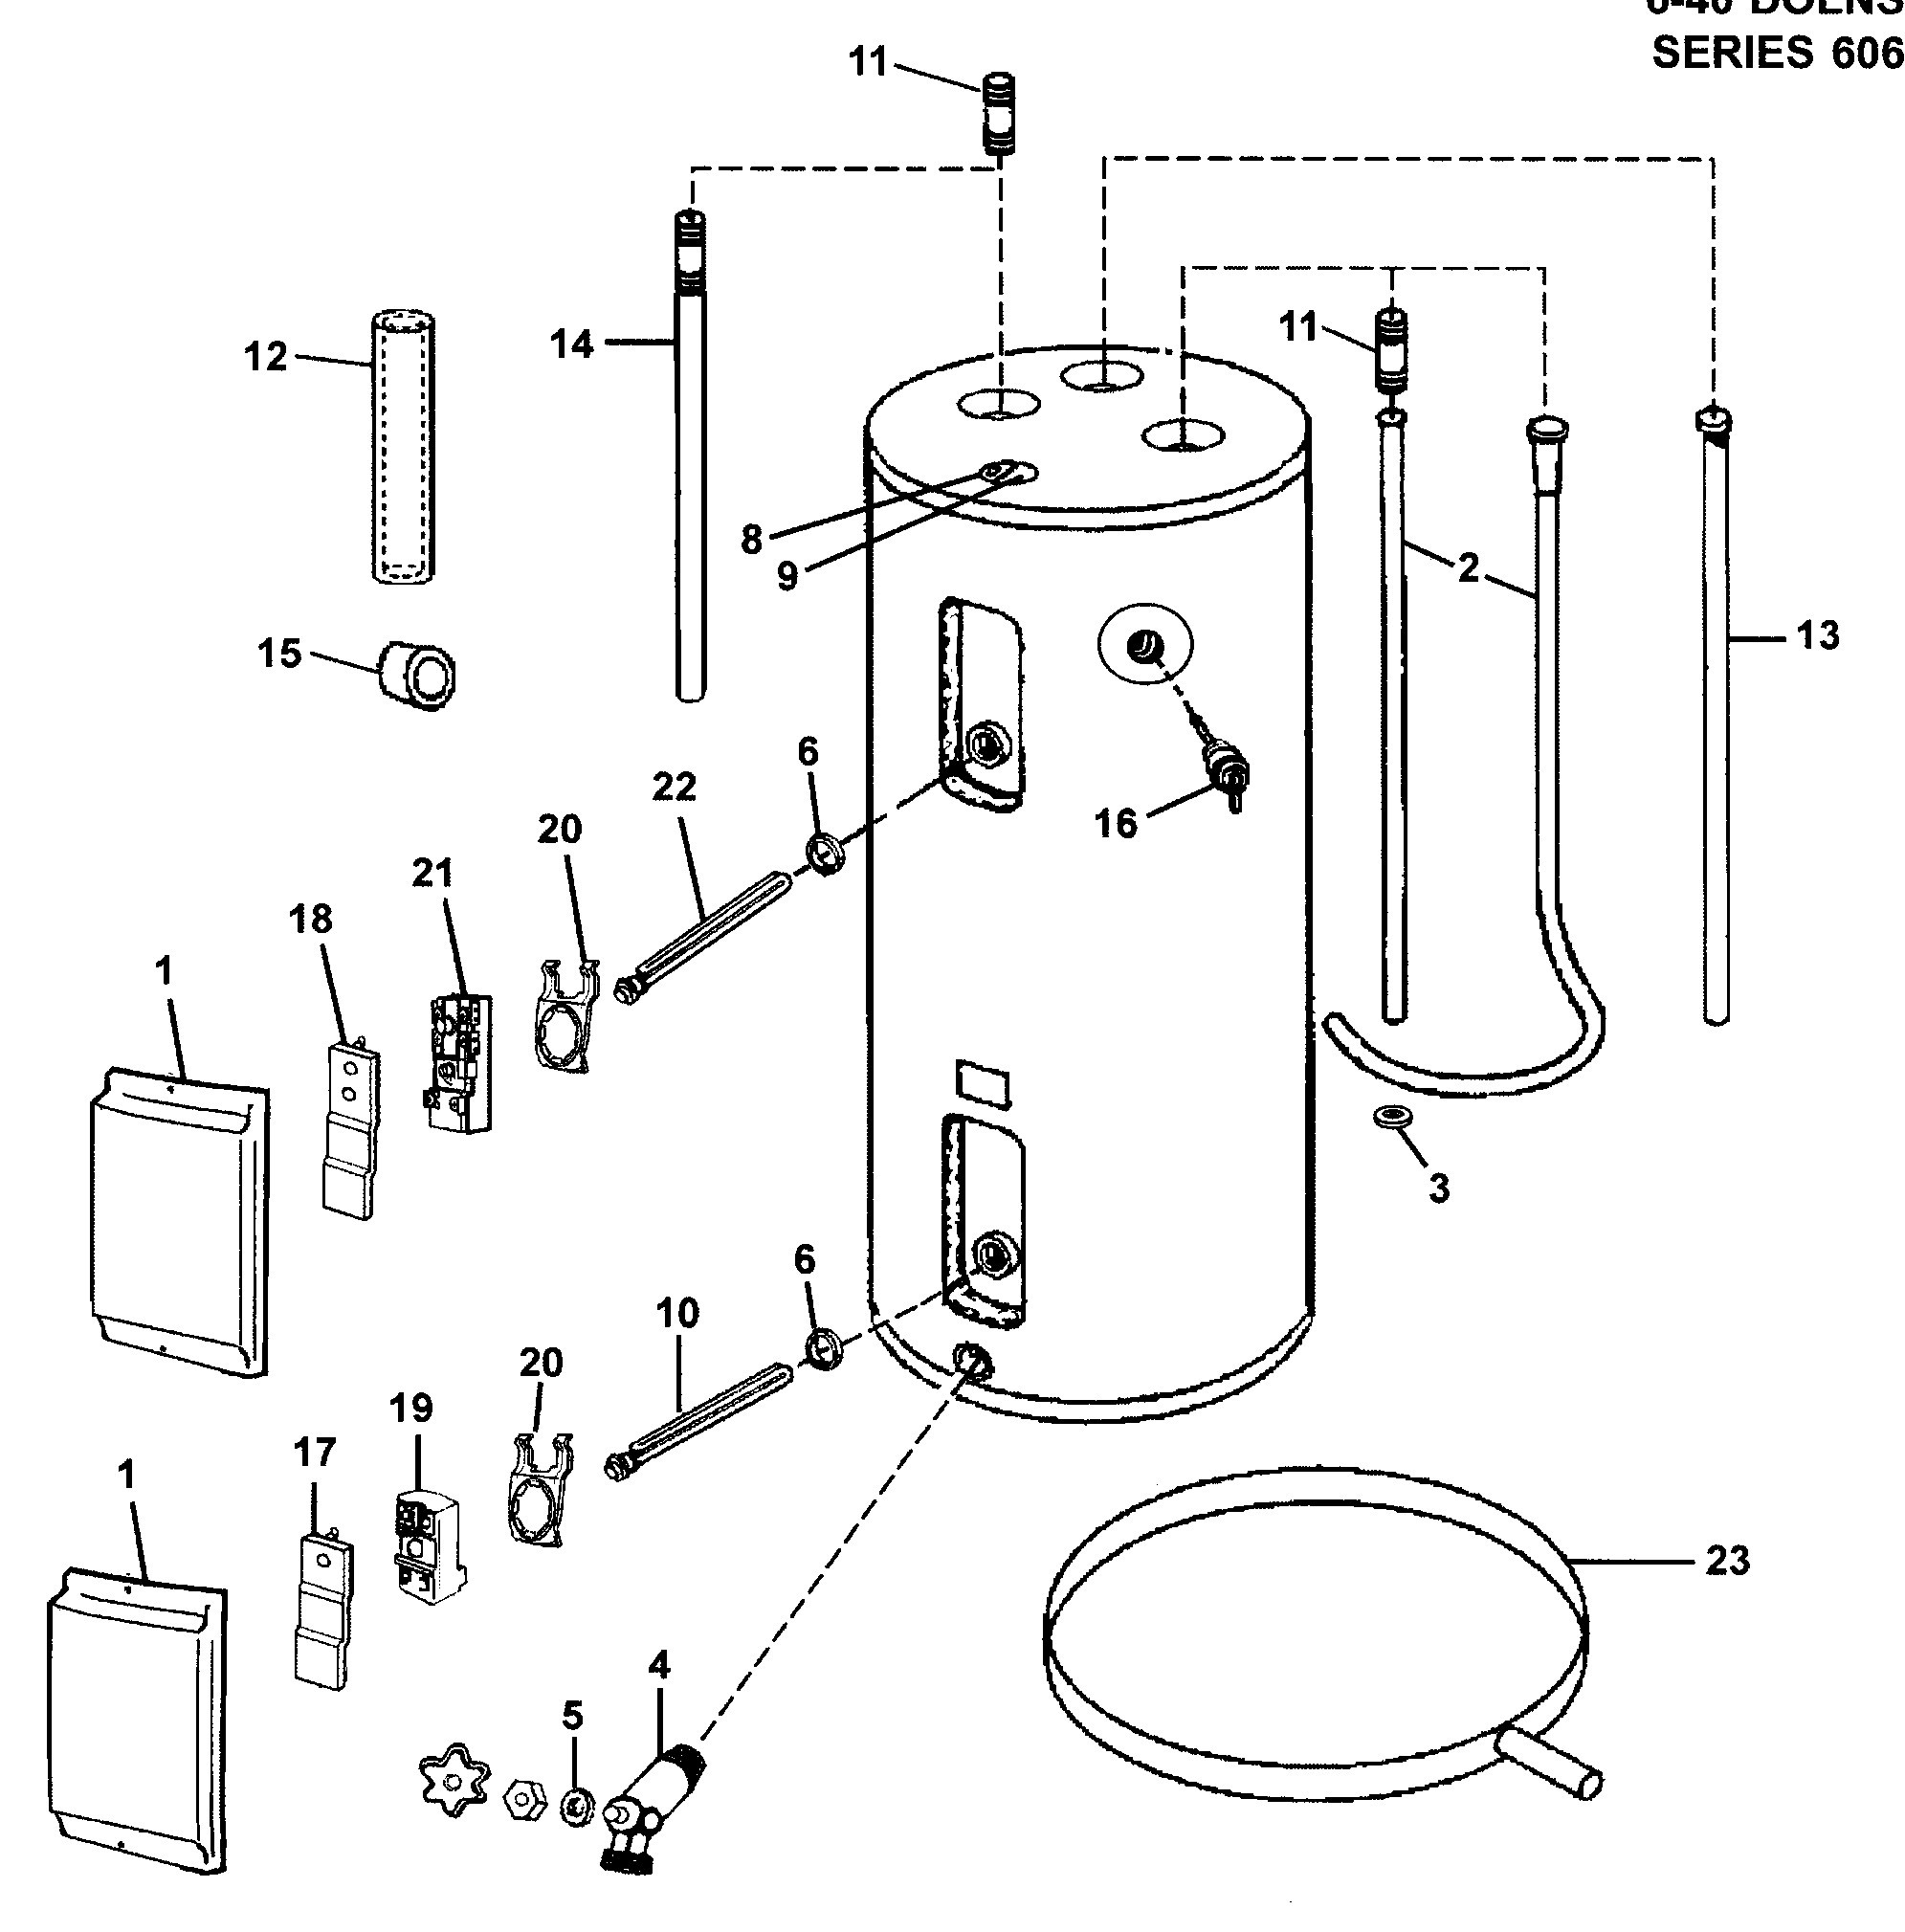 electric water heater wiring diagram Download-Wiring Diagram Electric Water Heater New Electric Water Heater Parts Diagram 6-j